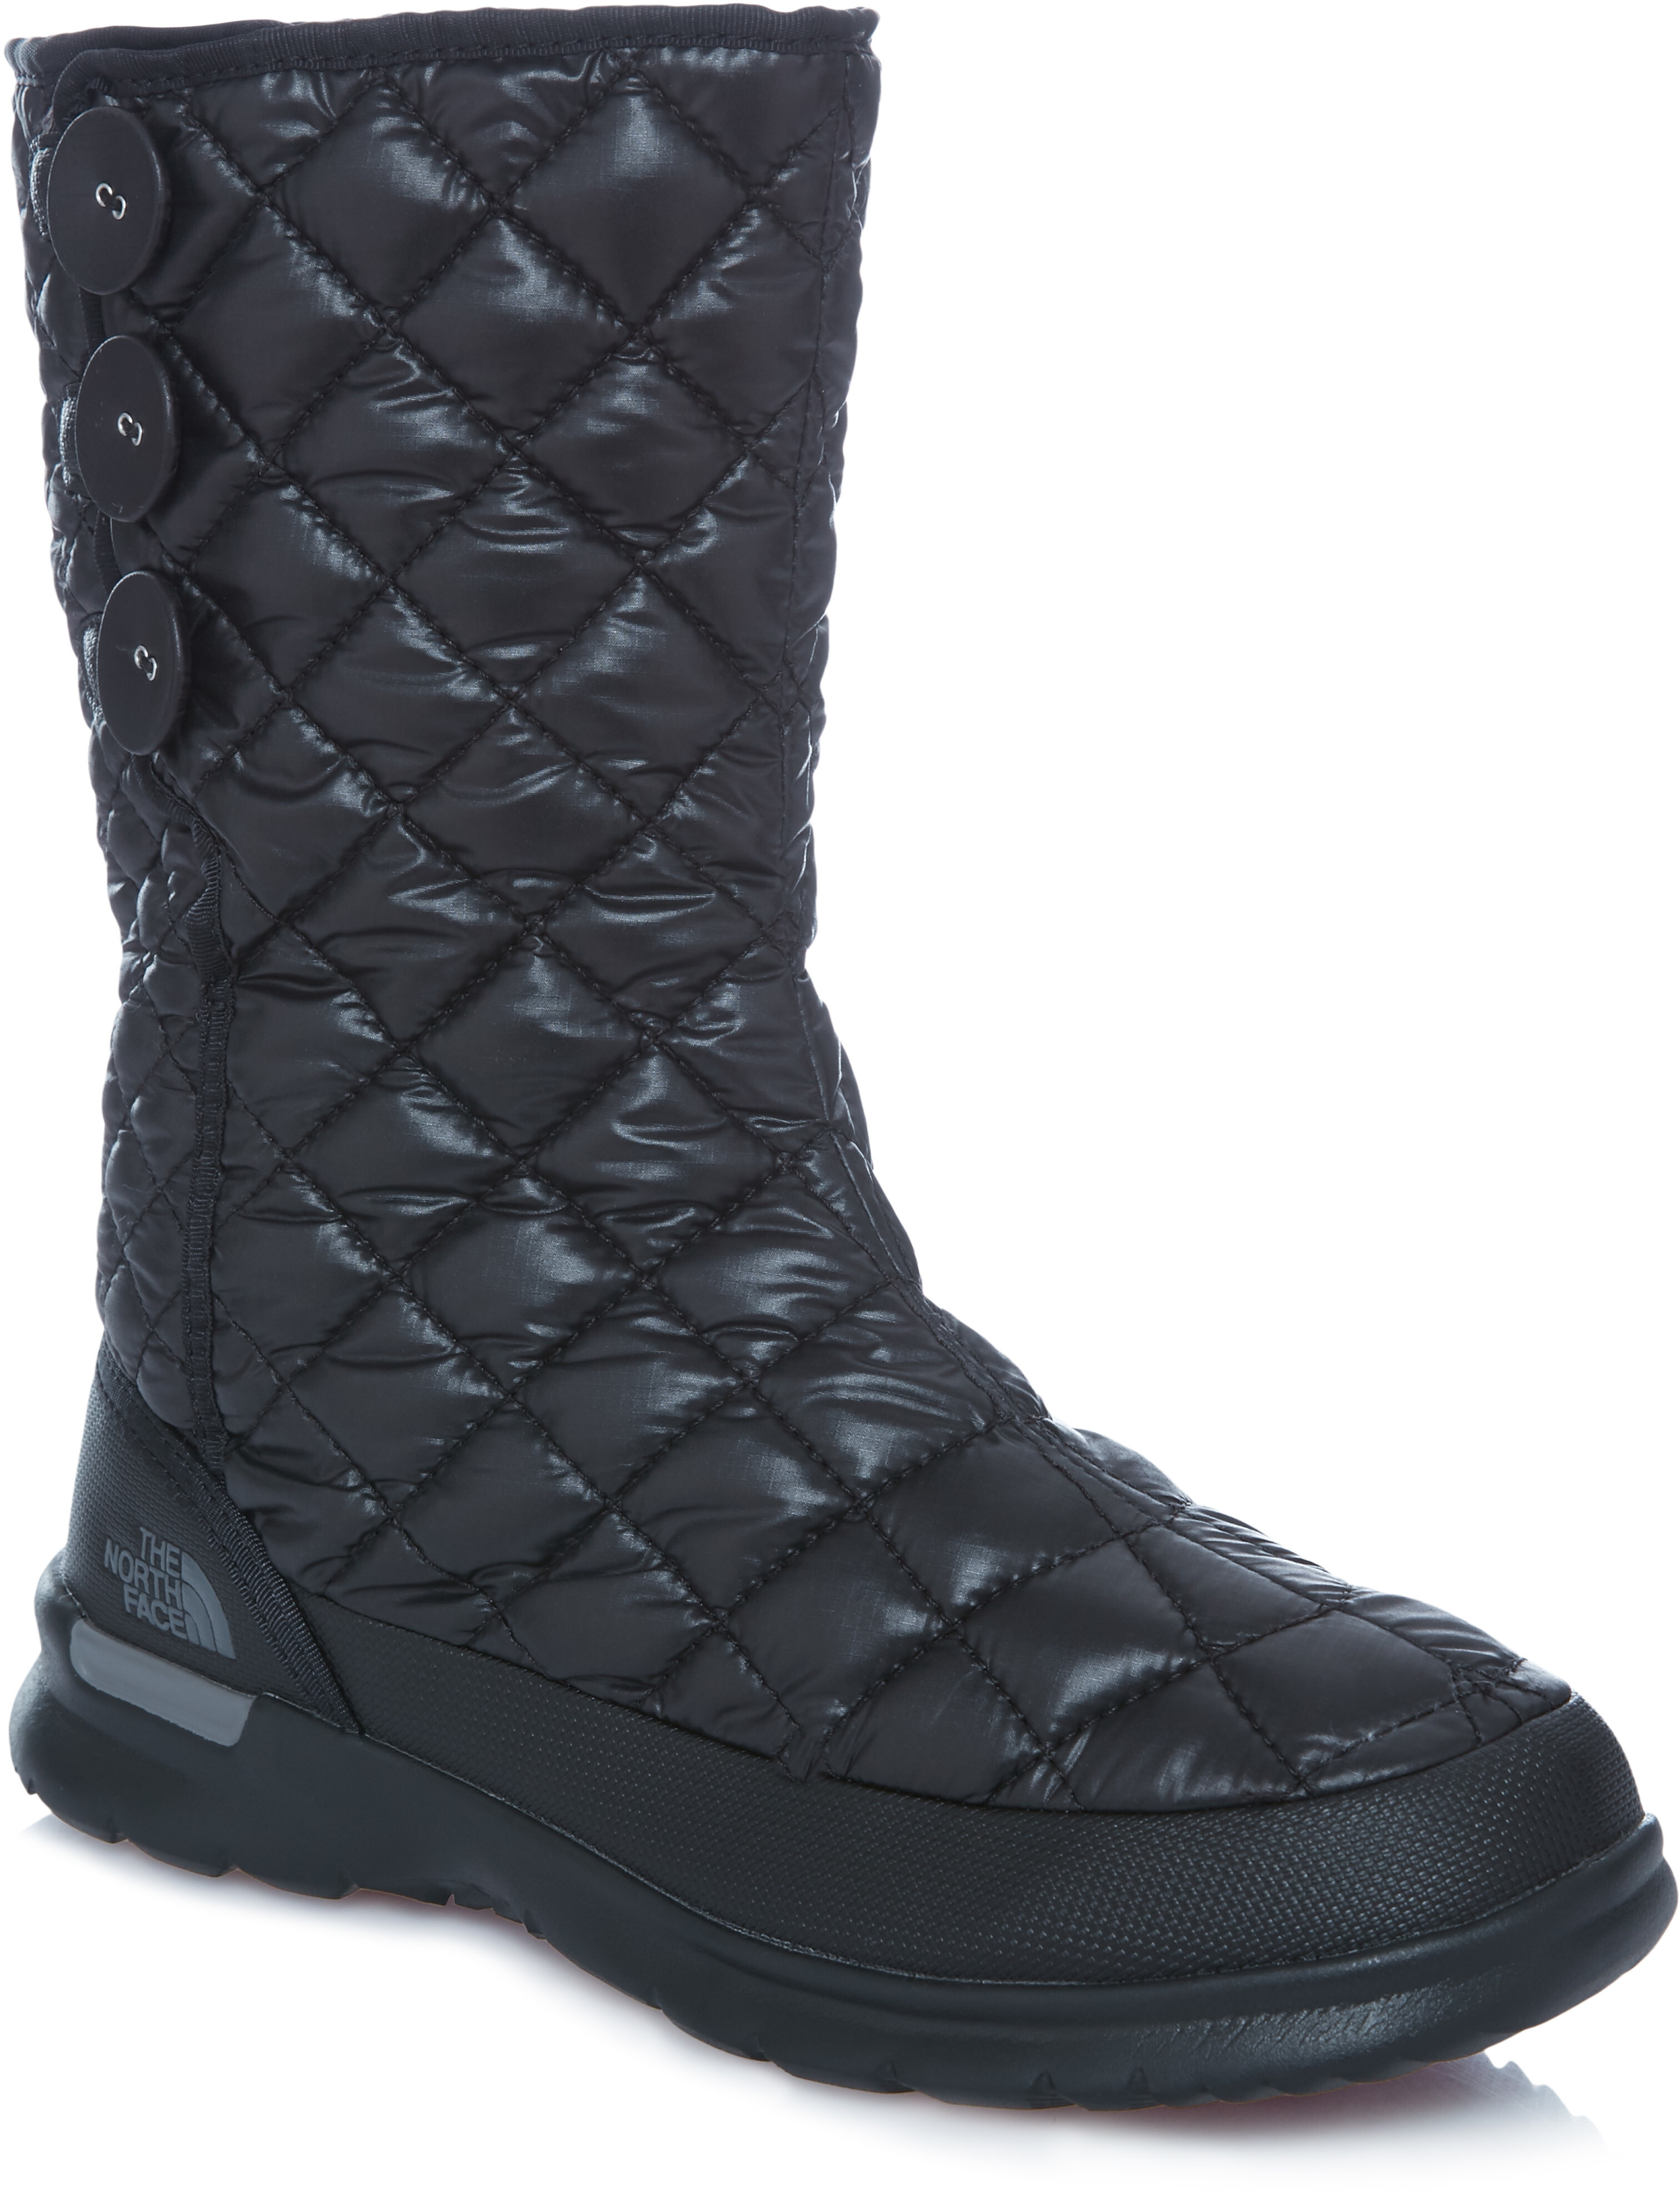 b774e51baee The North Face Thermoball Button-Up - Bottes Femme - noir sur CAMPZ !